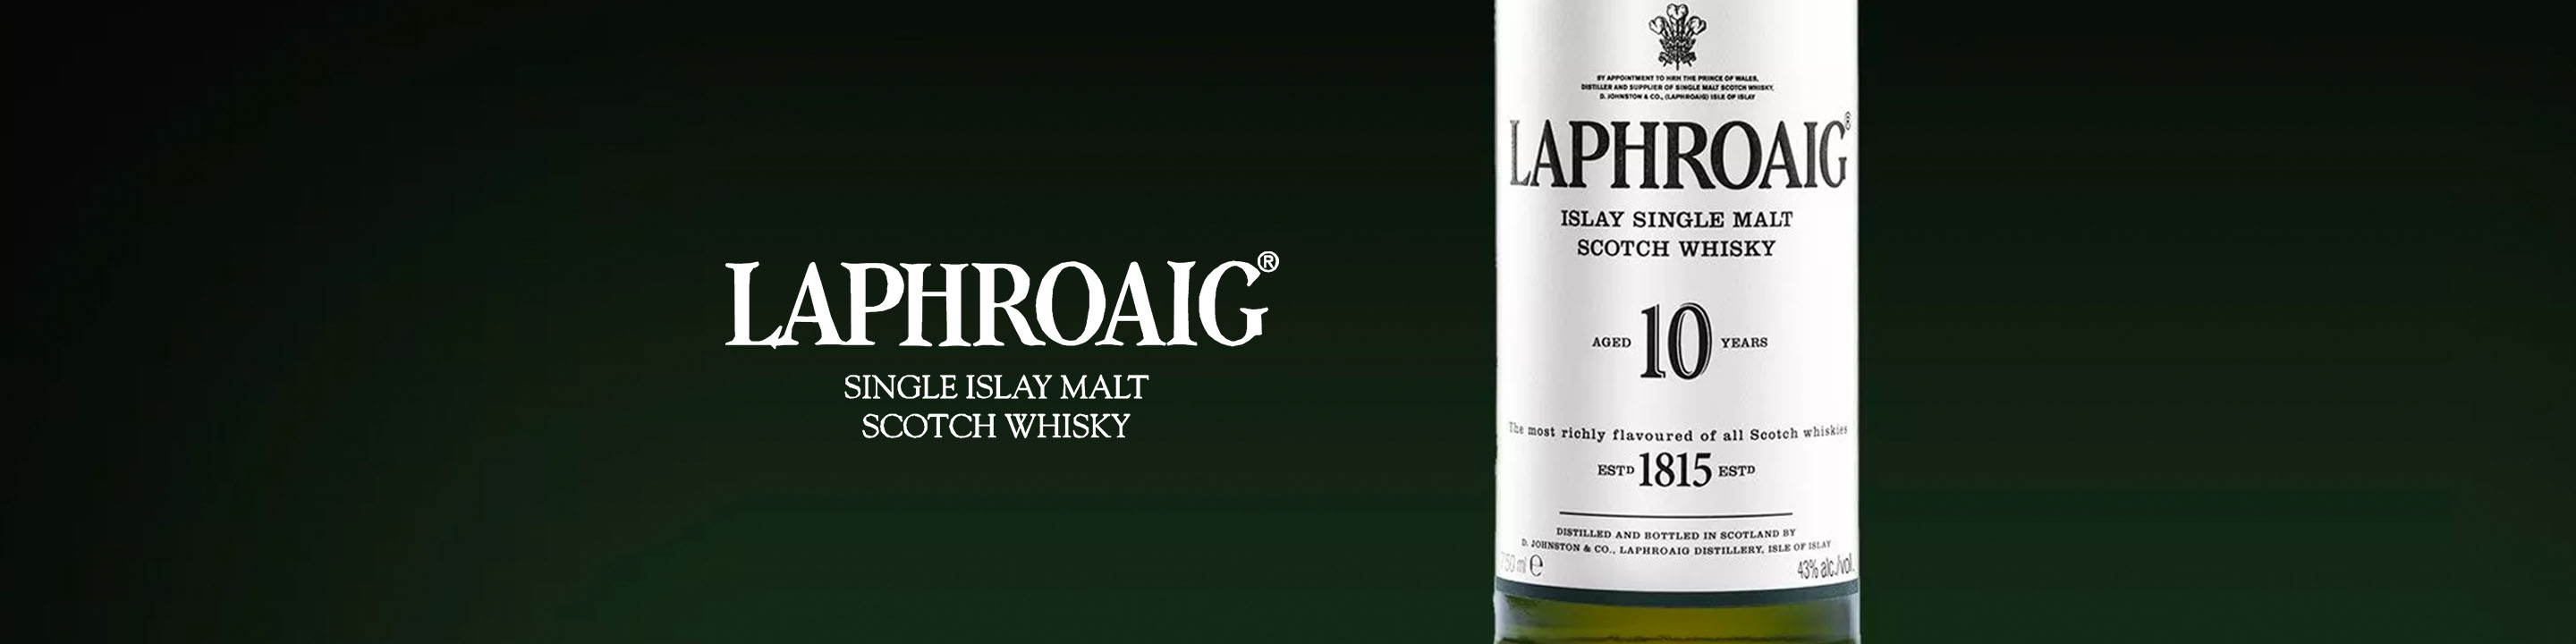 The original Laphroaig, distilled following traditions laid down by Ian Hunter over 75 years ago. In making Laphroaig, malted barley is dried over a peat fire. The smoke from this peat, found only on Islay, gives Laphroaig its particularly rich flavour. 